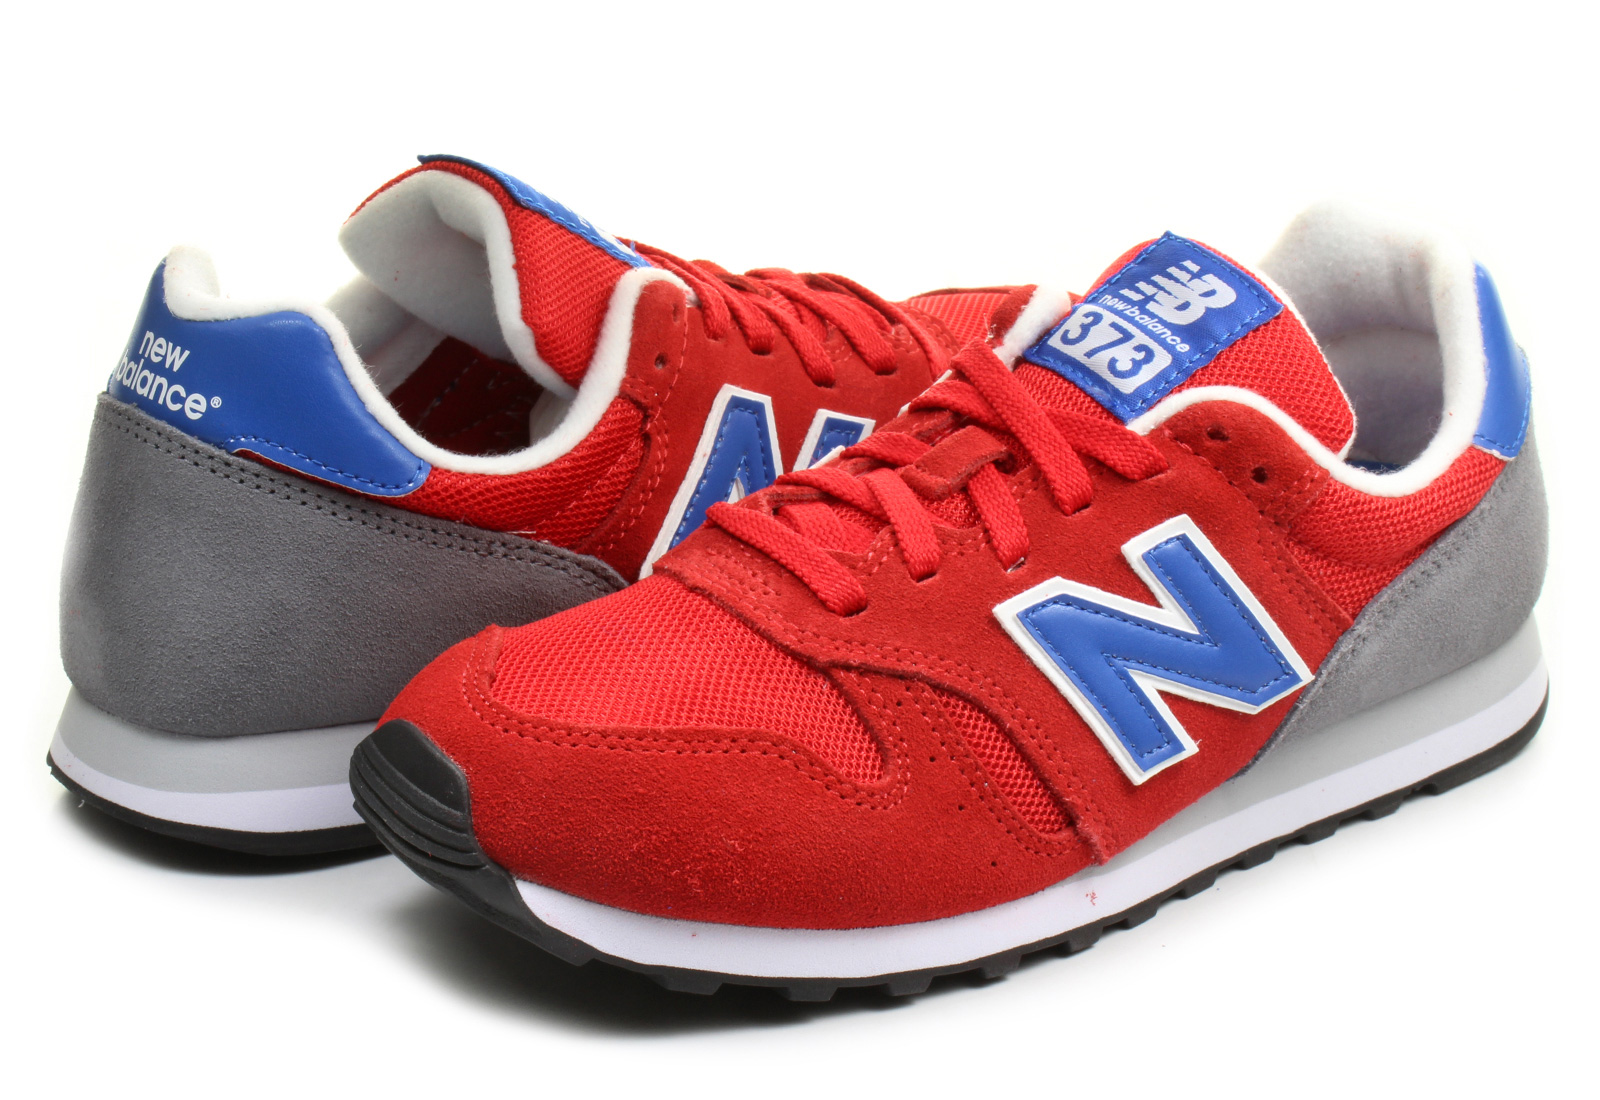 ml373 new balance red